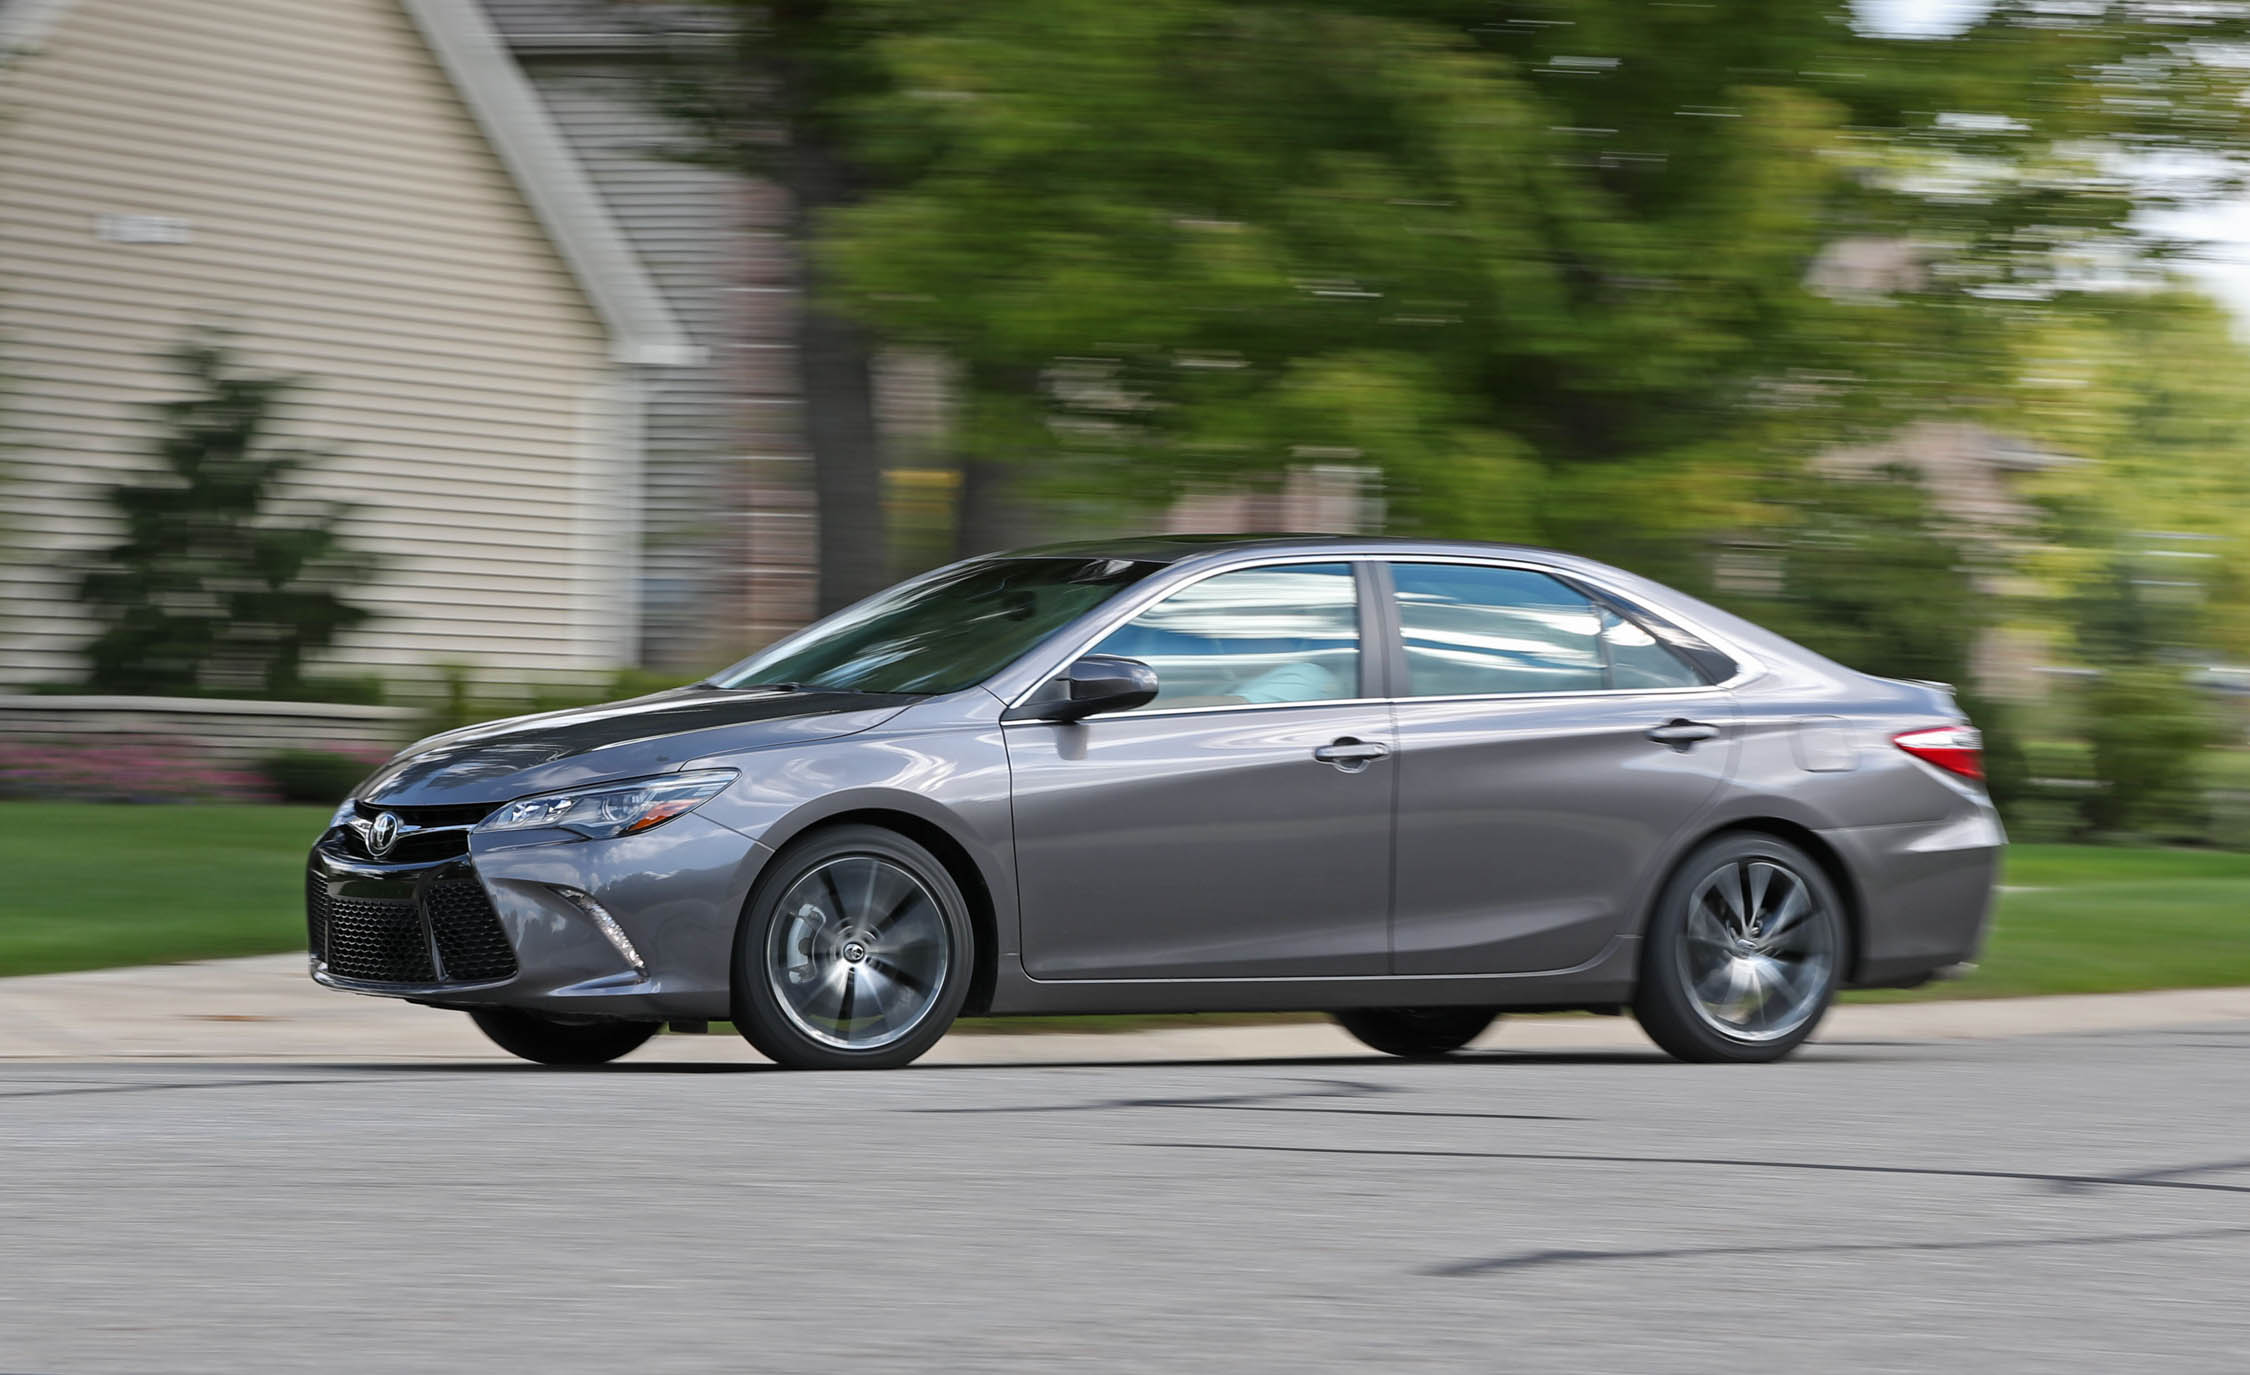 2017 Toyota Camry Test Drive Preview (View 12 of 37)